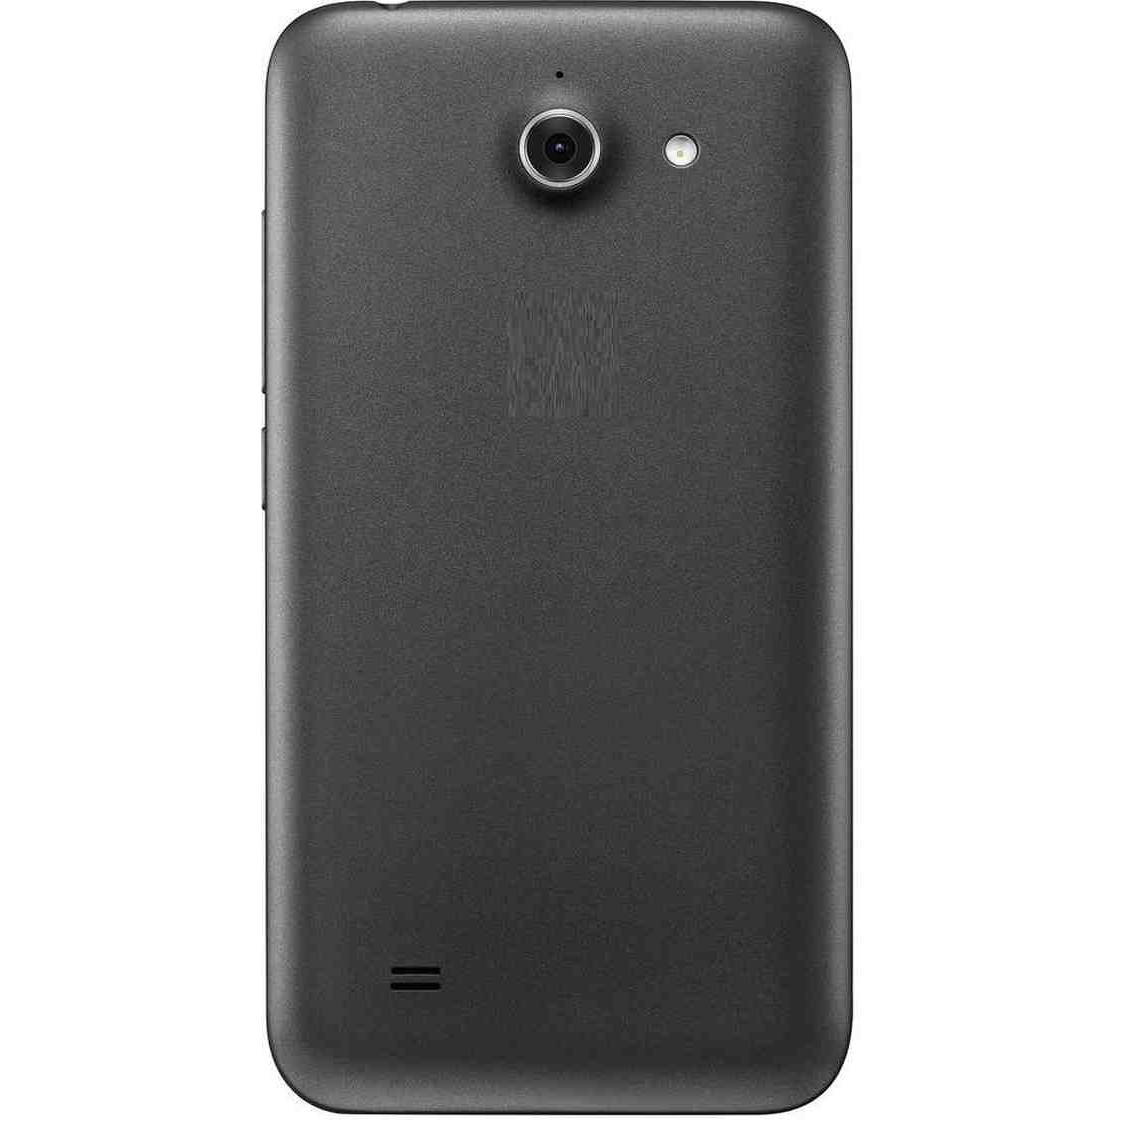 Back Panel Cover for Huawei Ascend Y550 - Black